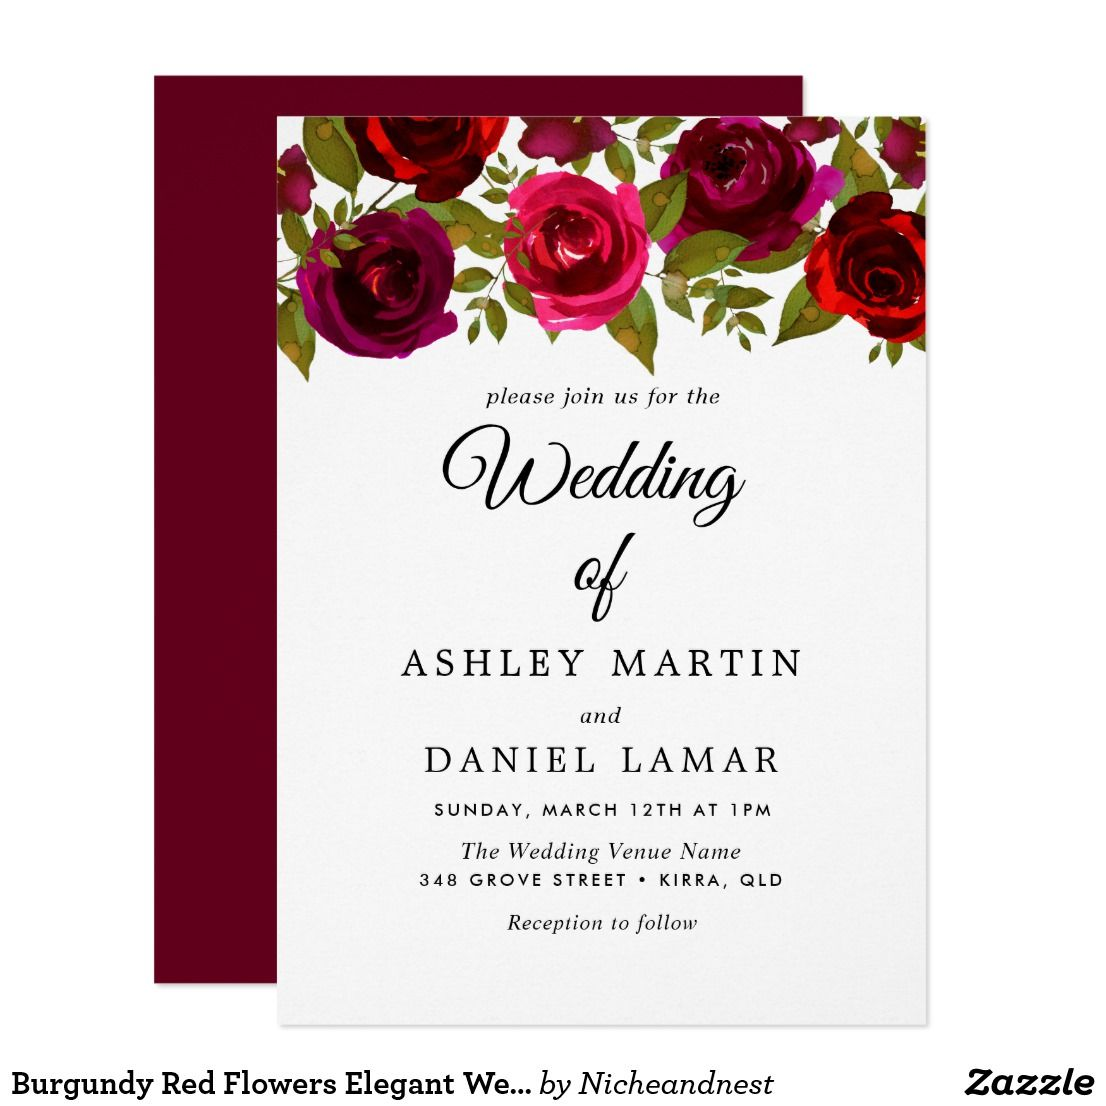 Burgundy Red Flowers Elegant Wedding Invitation | Wedding ...